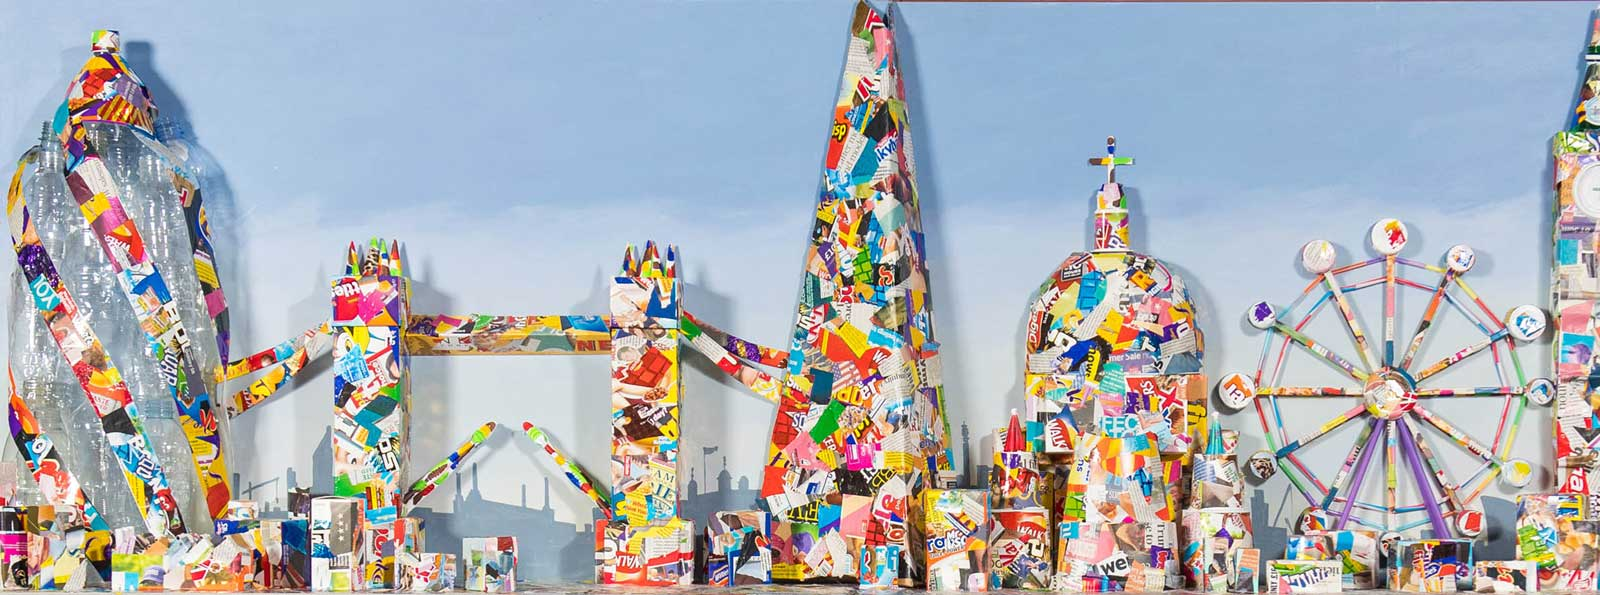 Skyline of London constructed from recycled litter.